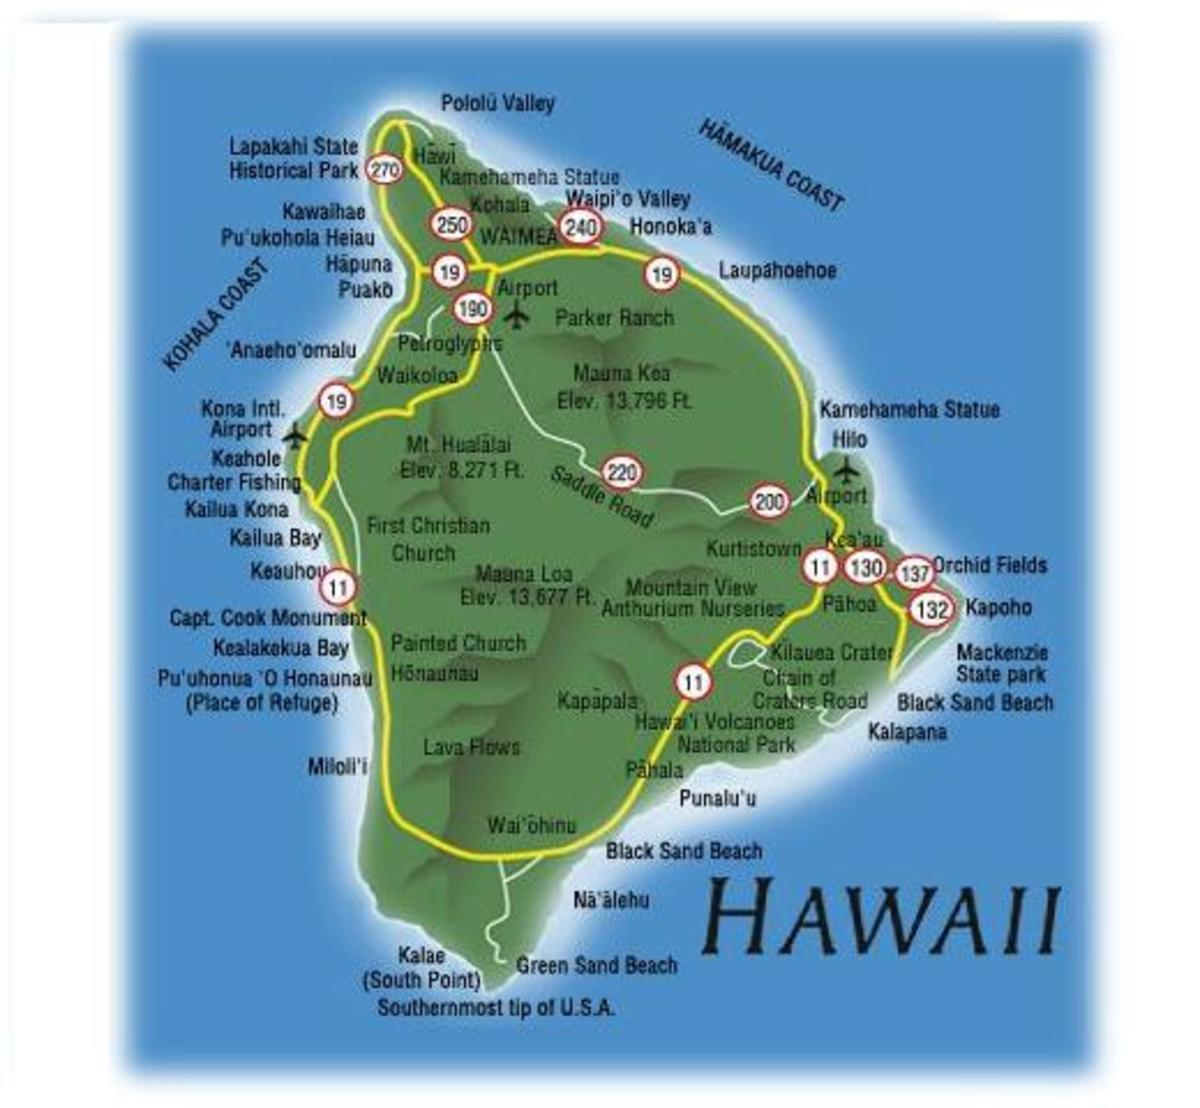 Map shows Kailua Kona on the west side of island. Old airport is a park now. There is a new modern international airport to the north.